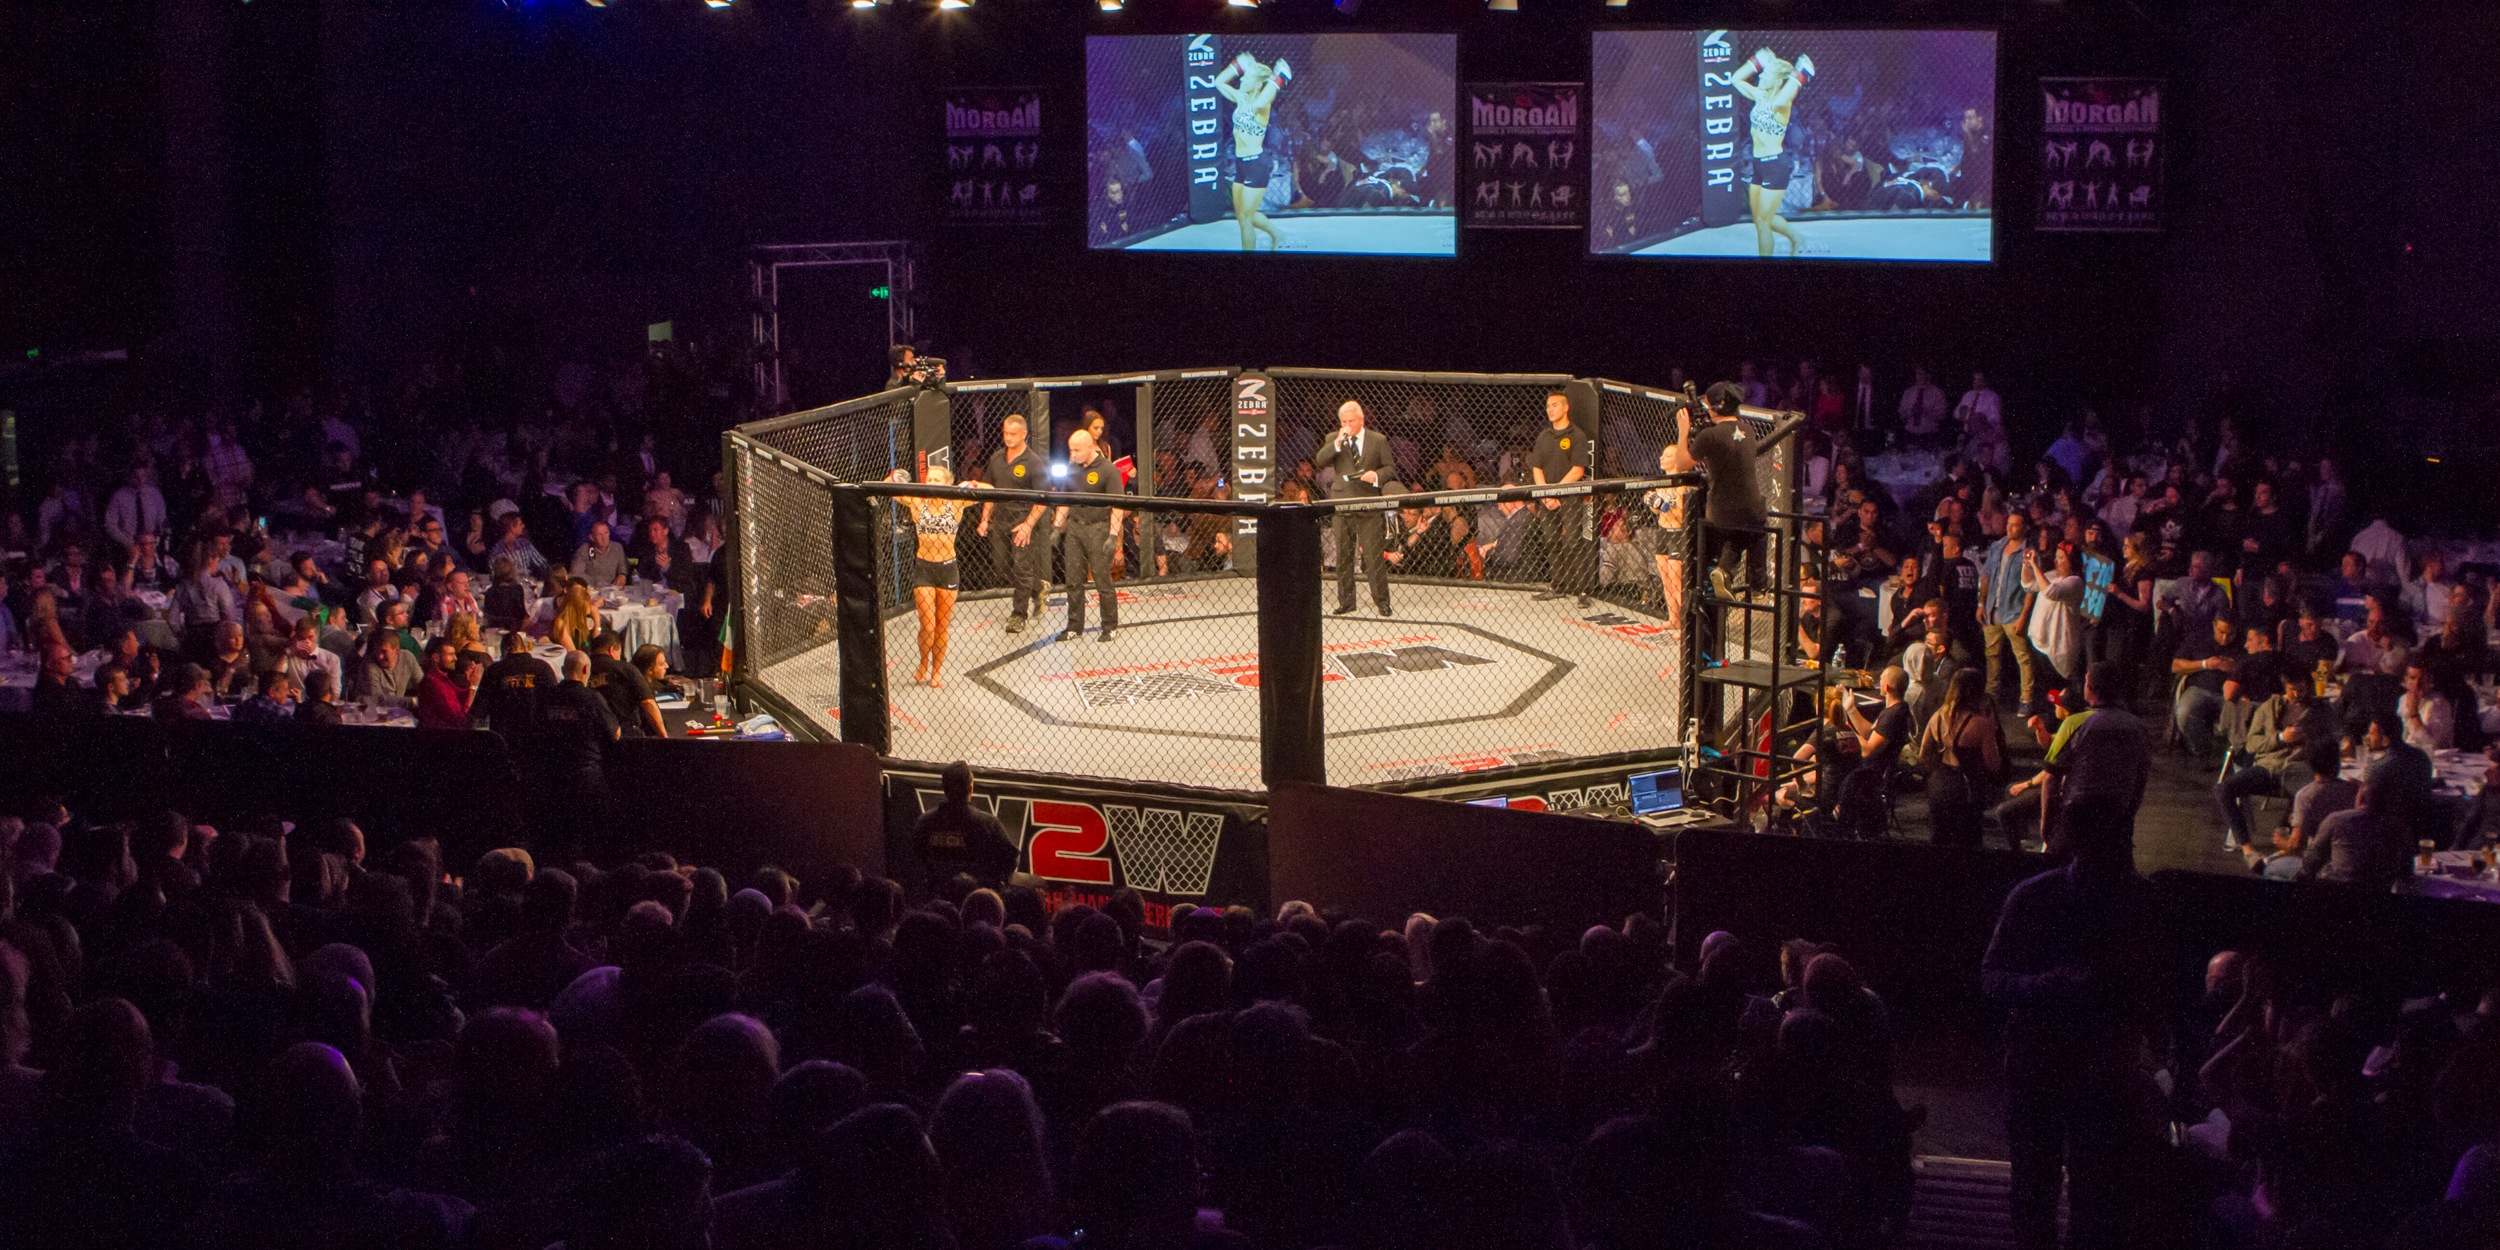 Champion's Creed to Host Wimp2Warrior's Fight Night on April 6